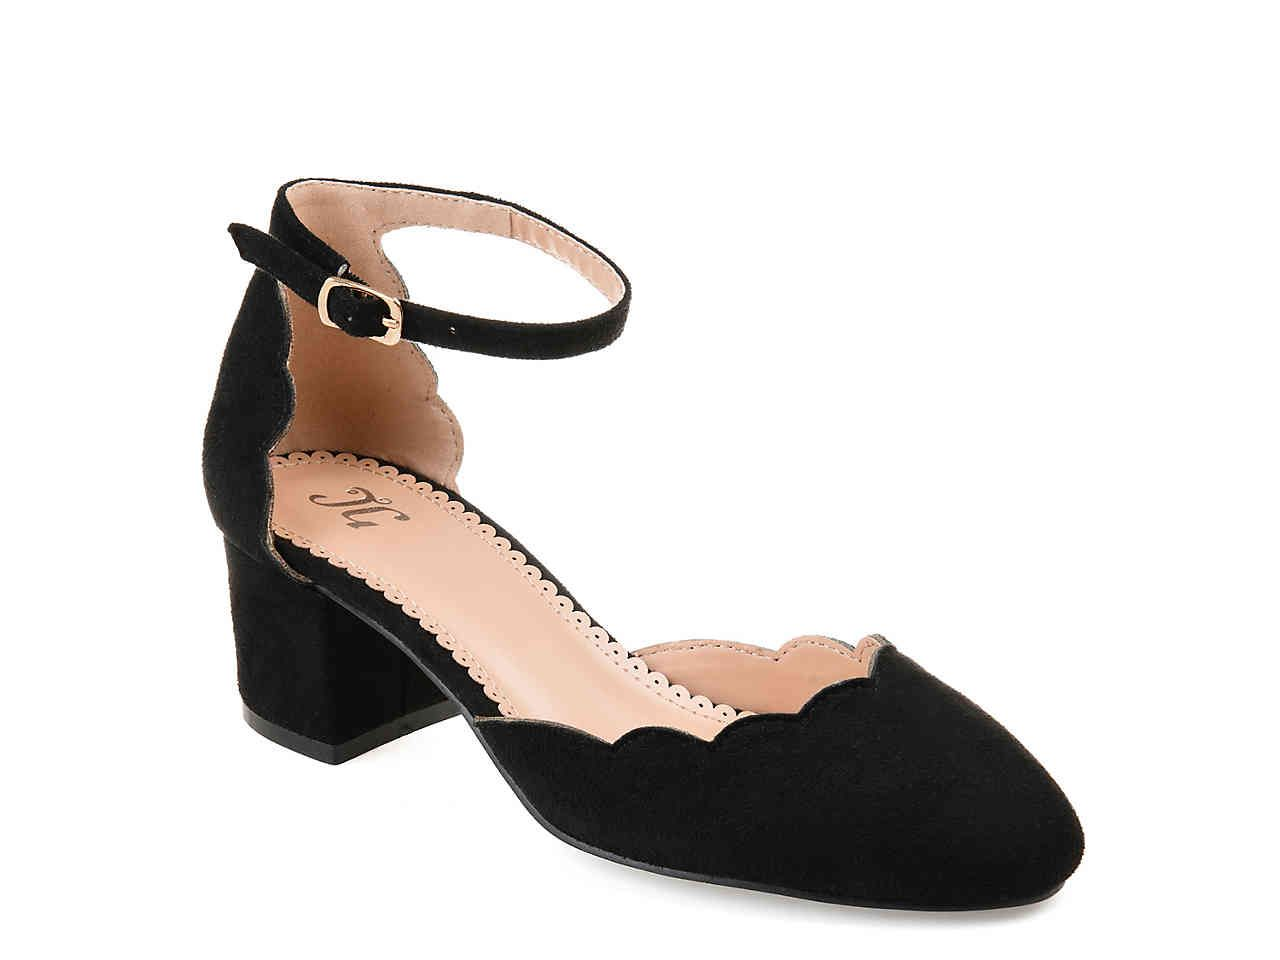 Journee Collection Edna Pump In 2020 Ankle Strap Heels Black Court Shoes Prom Shoes